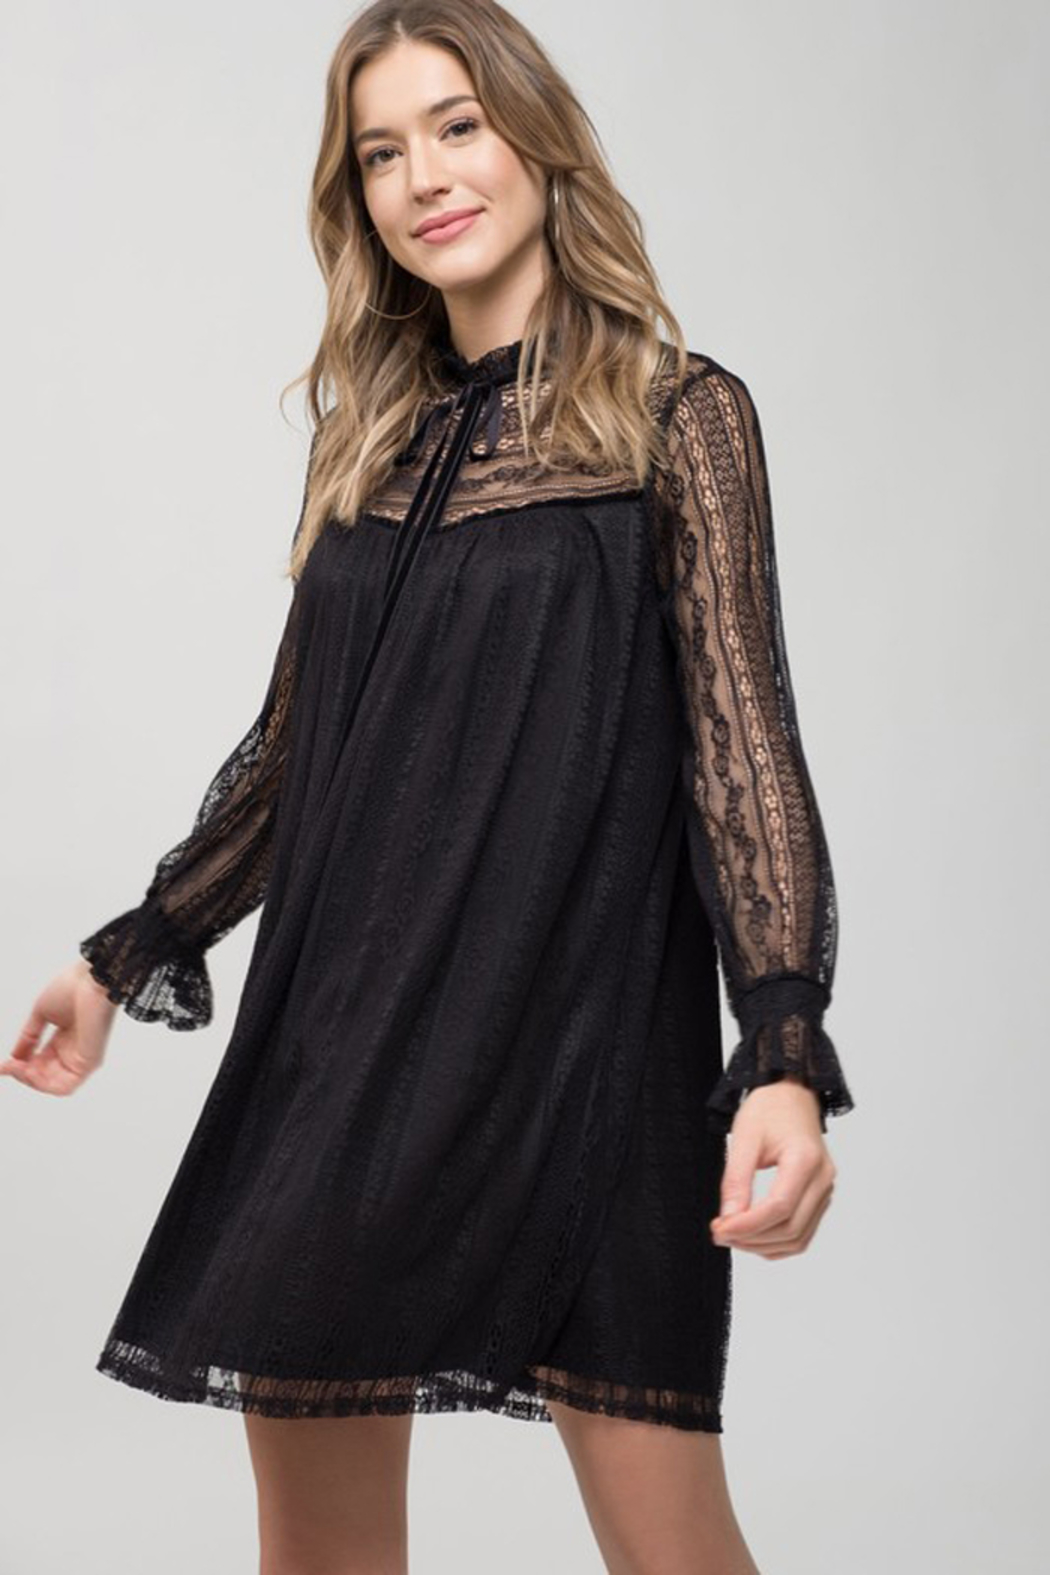 To acquire Black Long lace dress pictures pictures trends